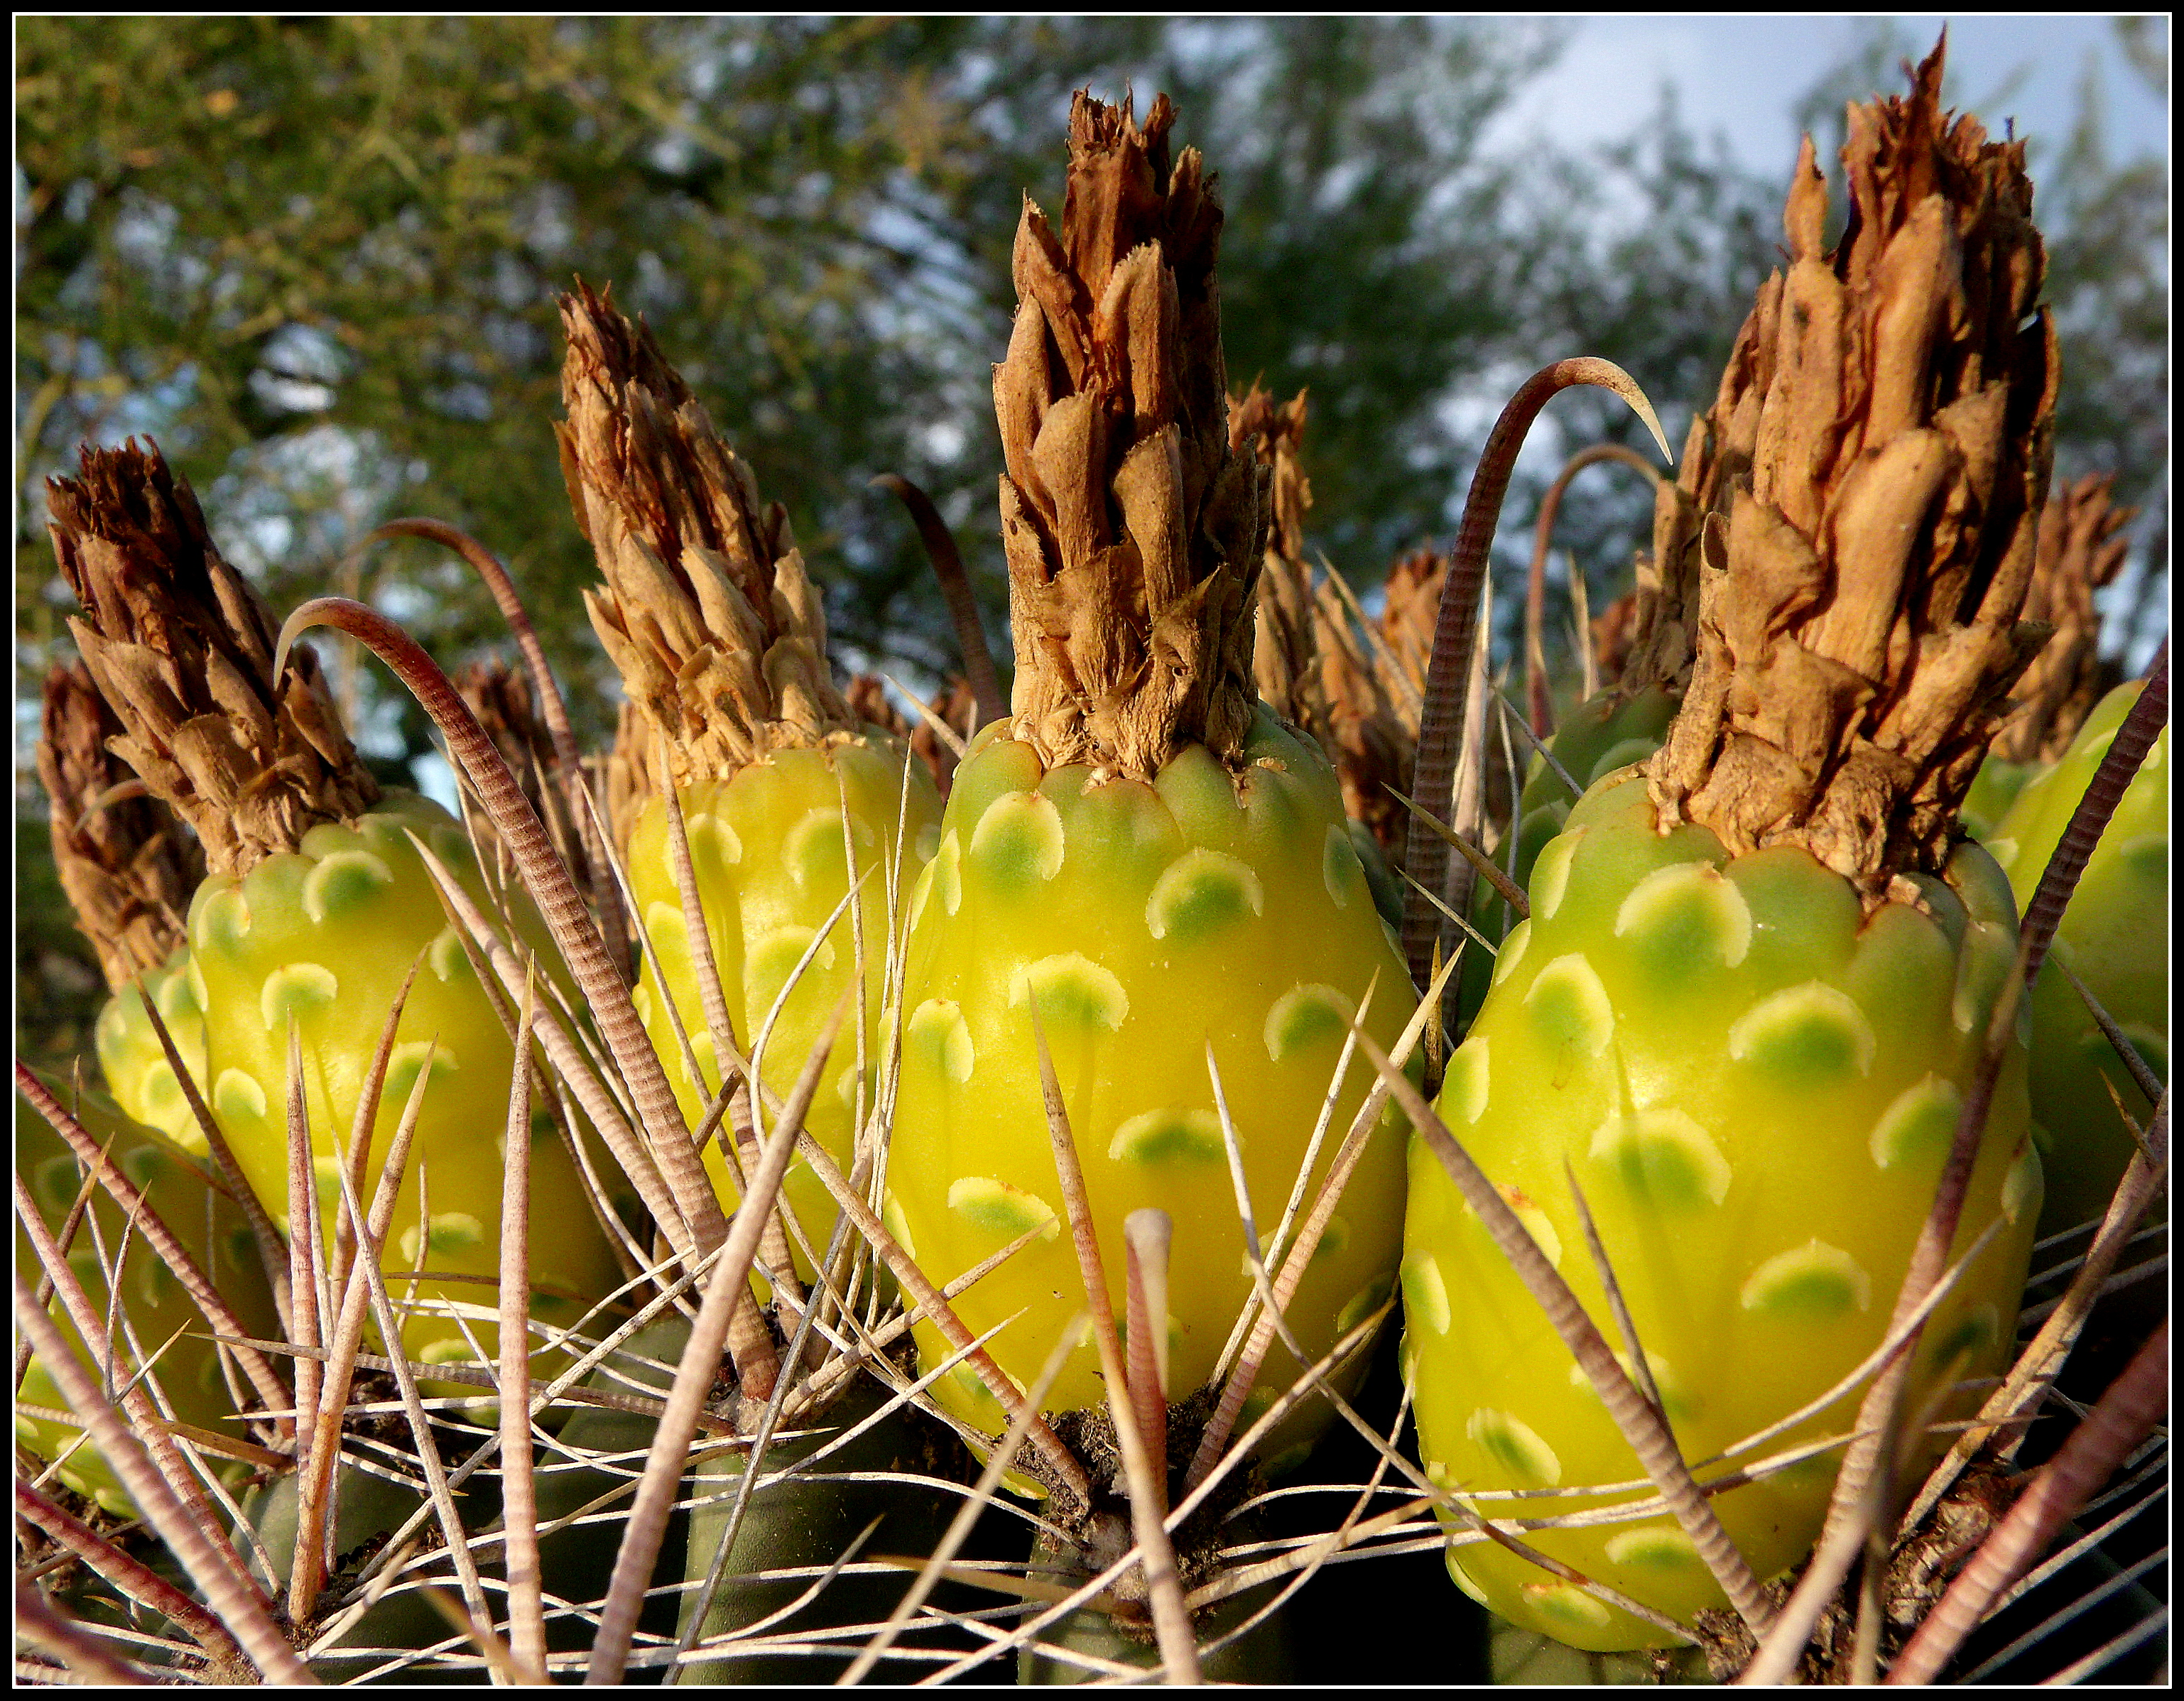 Prickly Pear Cactus Scott S Place Images And Words